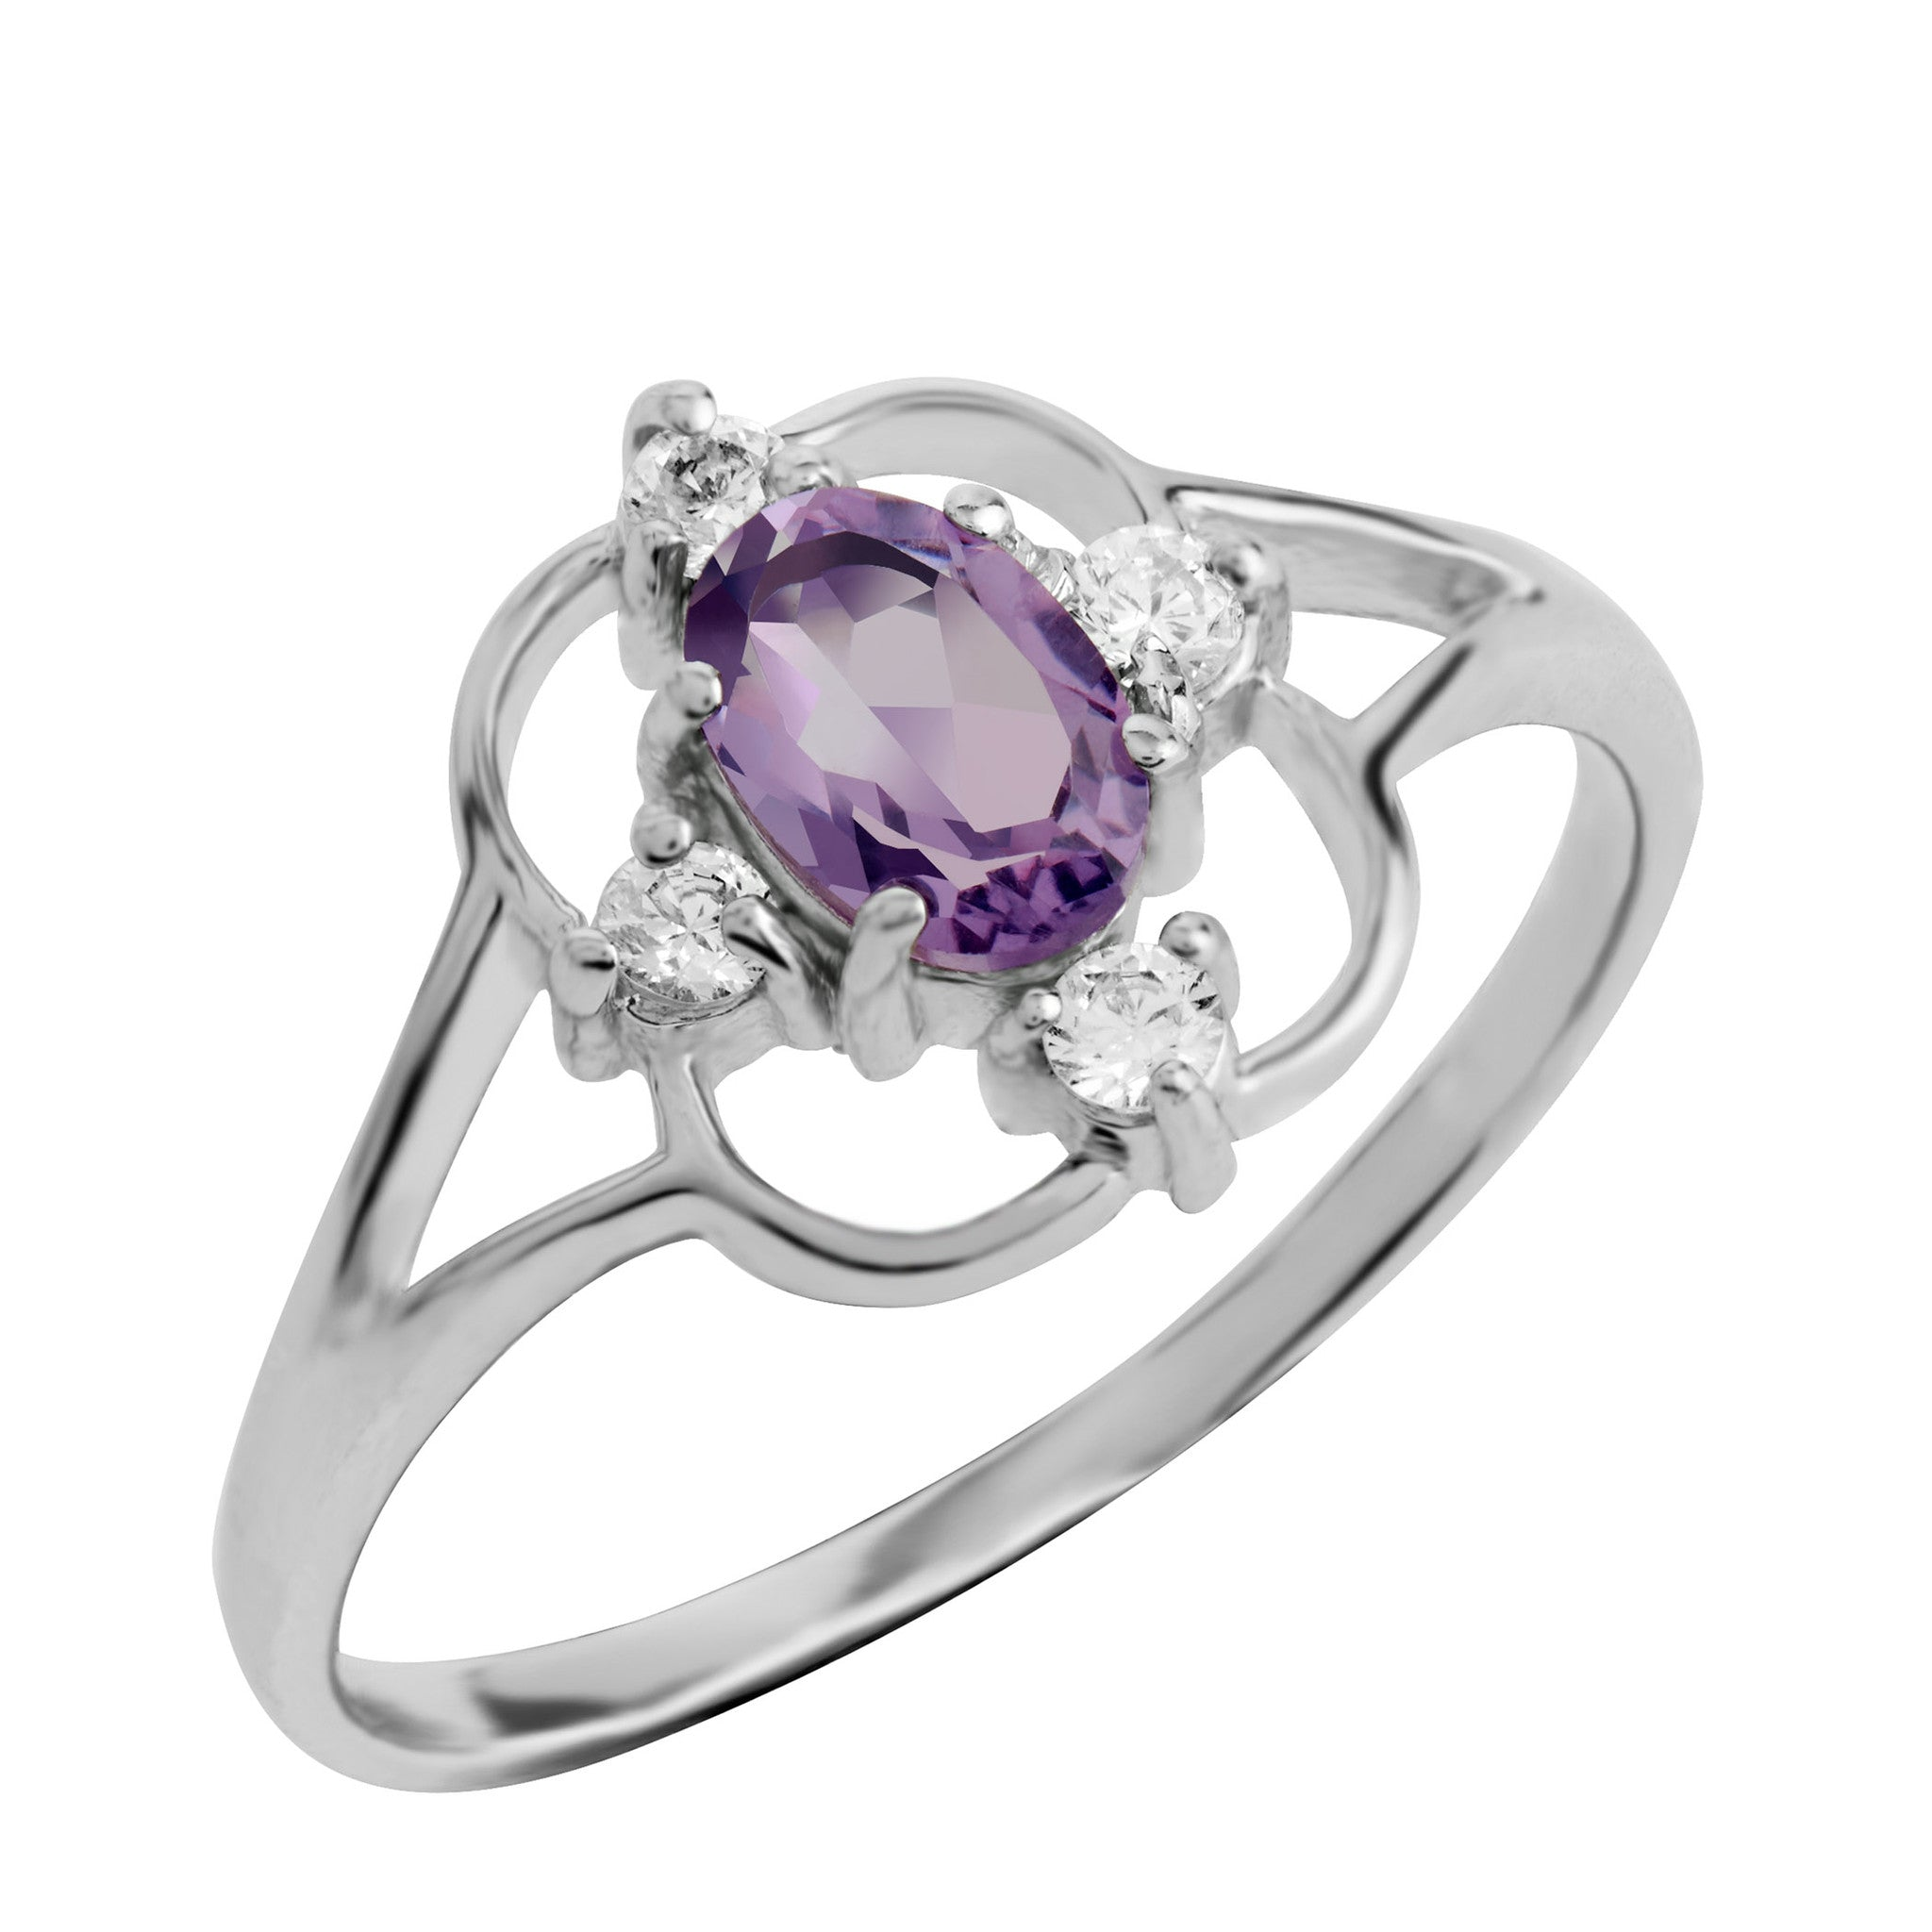 purple shop jewelry diamond garnet lc gemstone more education value meaning stone properties